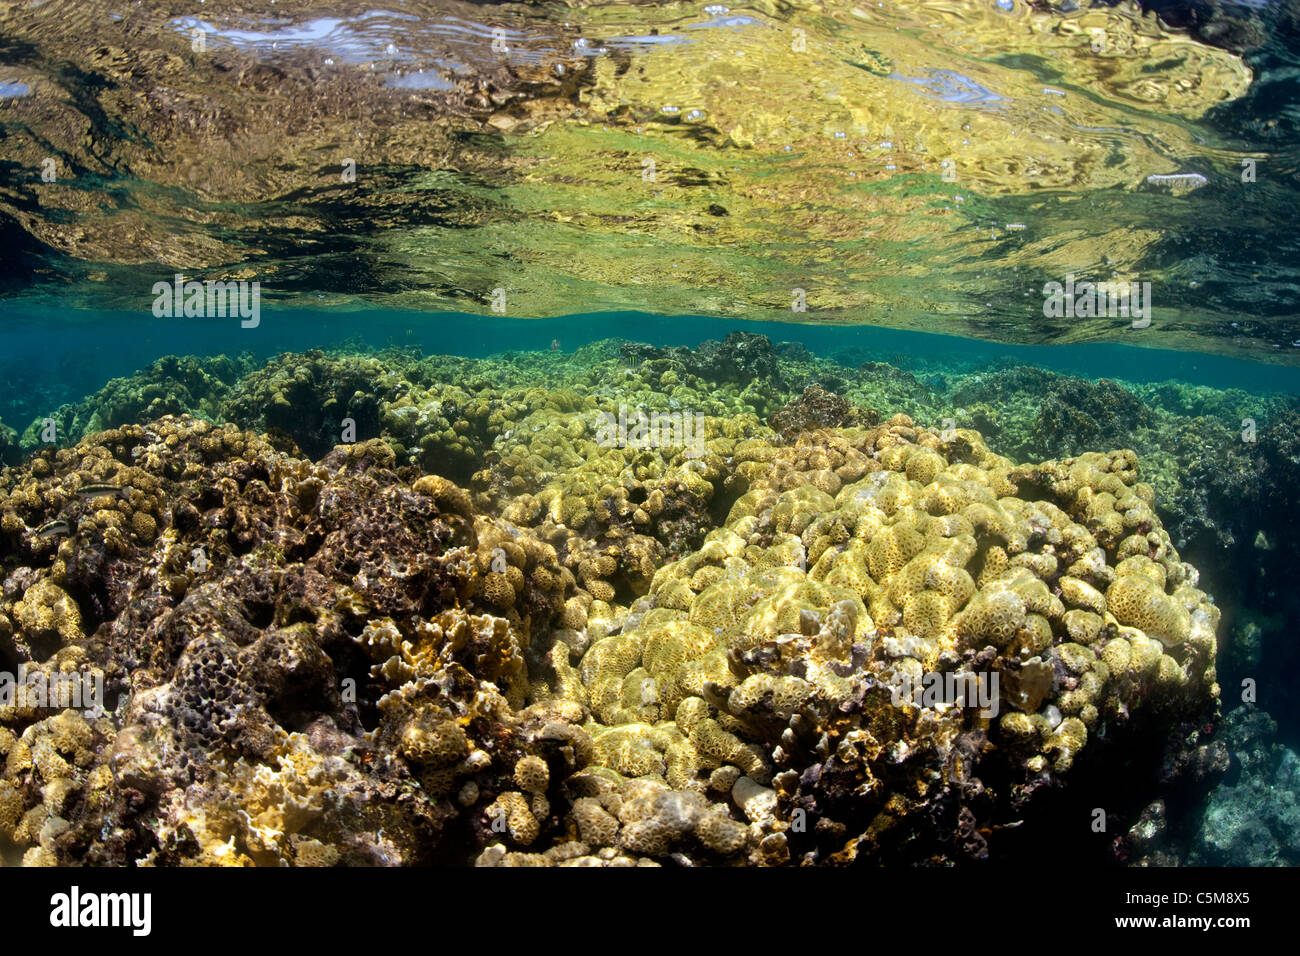 A coral reef flat at the surface of the ocean at Swan Islands, a remote group of islands 90 miles off the coast - Stock Image